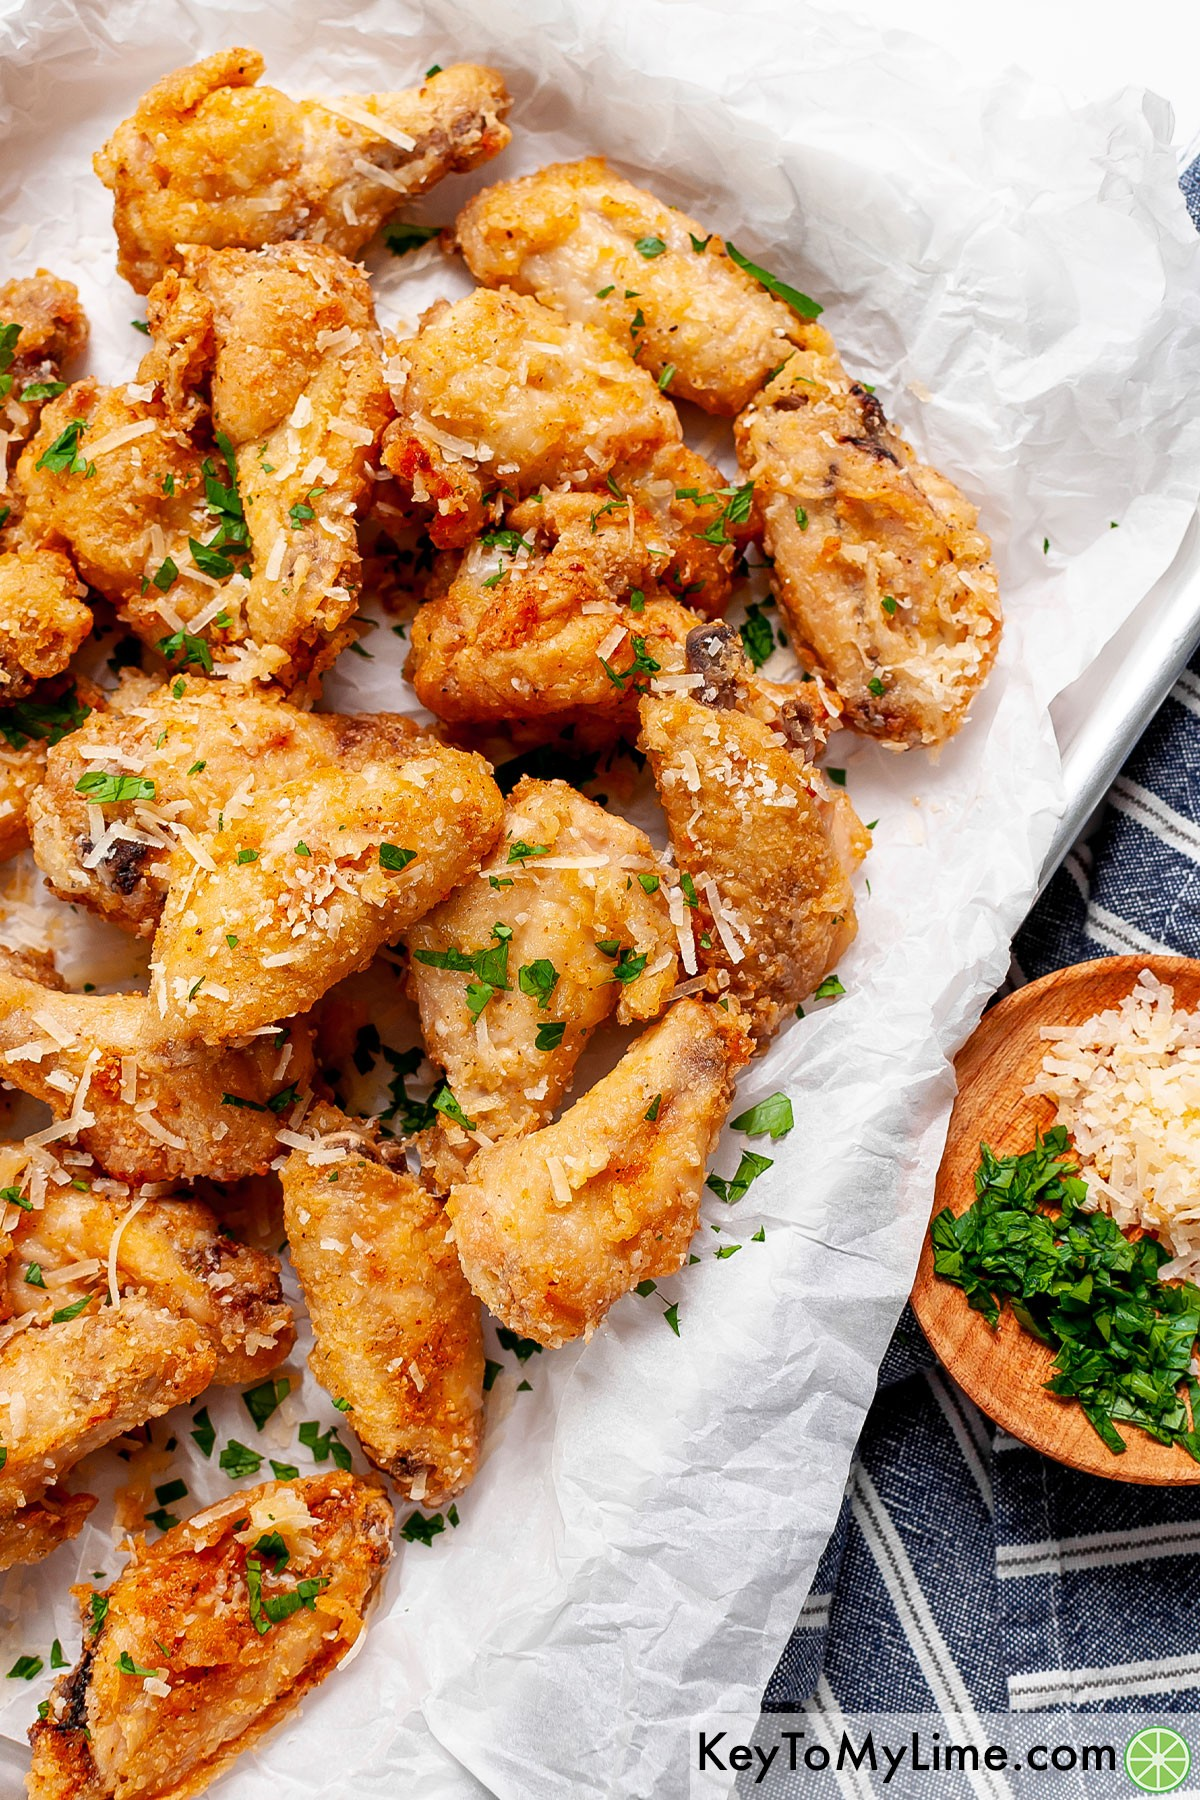 A tray of garlic parmesan wings against a blue striped napkin.